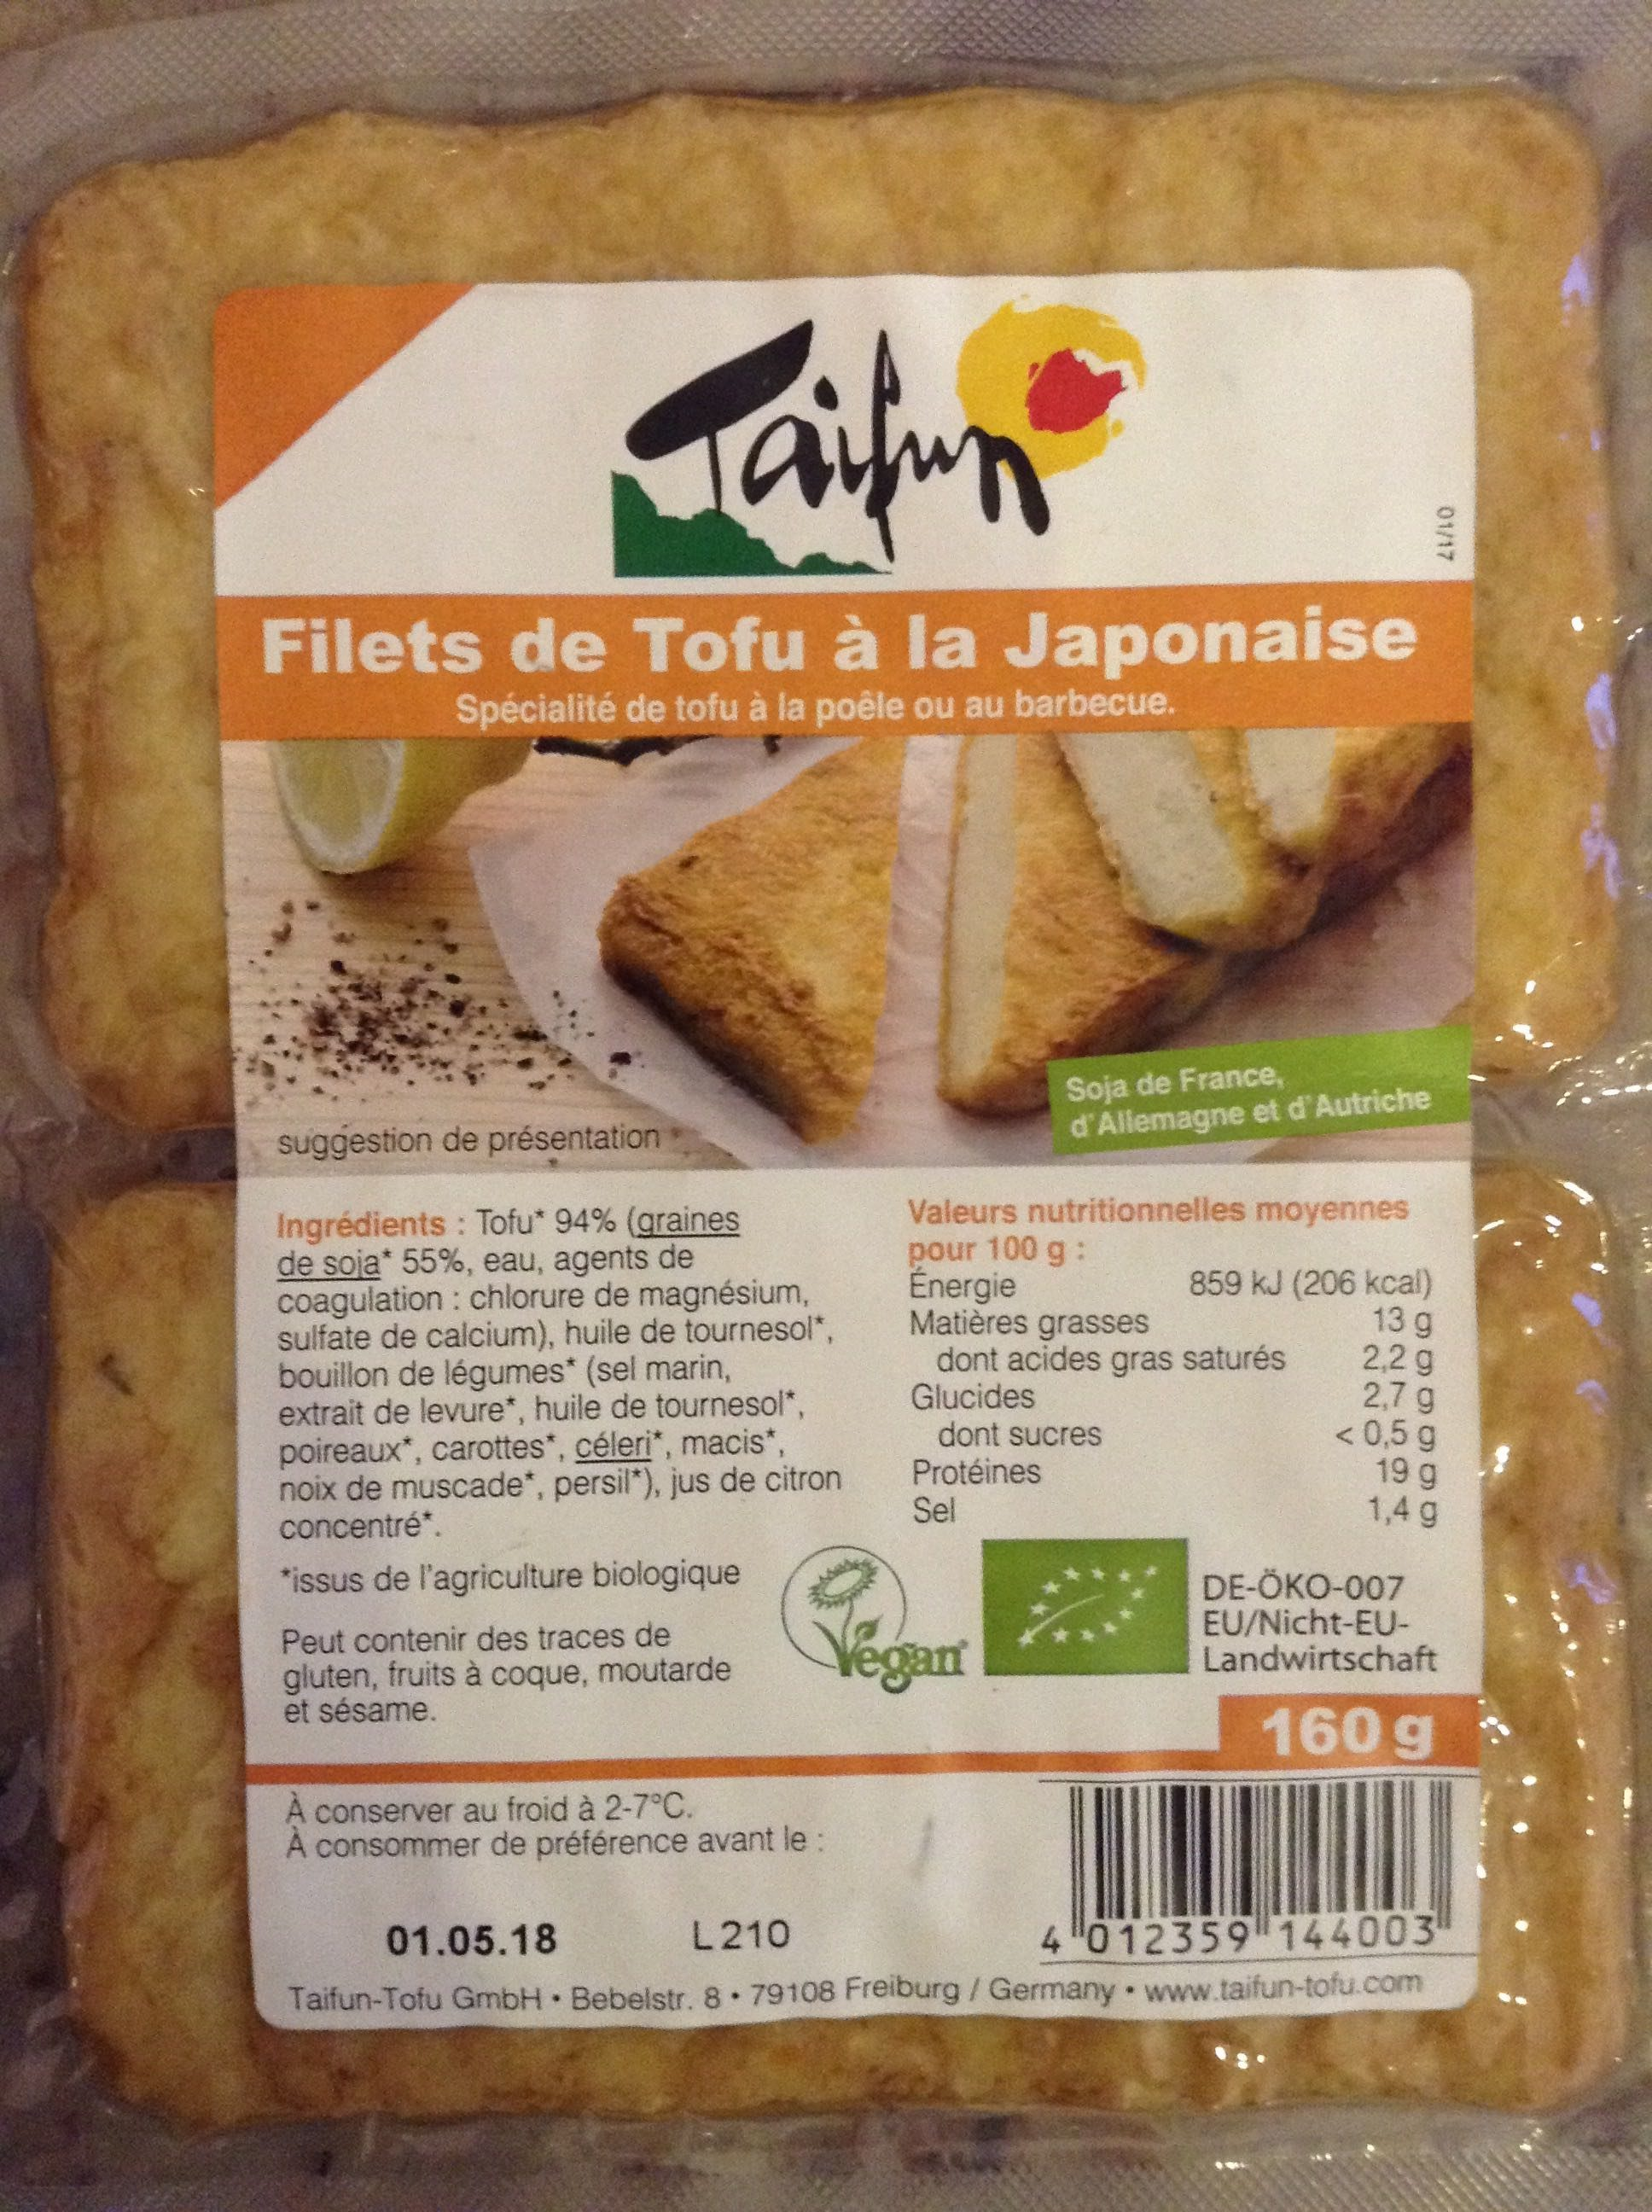 Filets de tofu à la japonaise - Product - fr